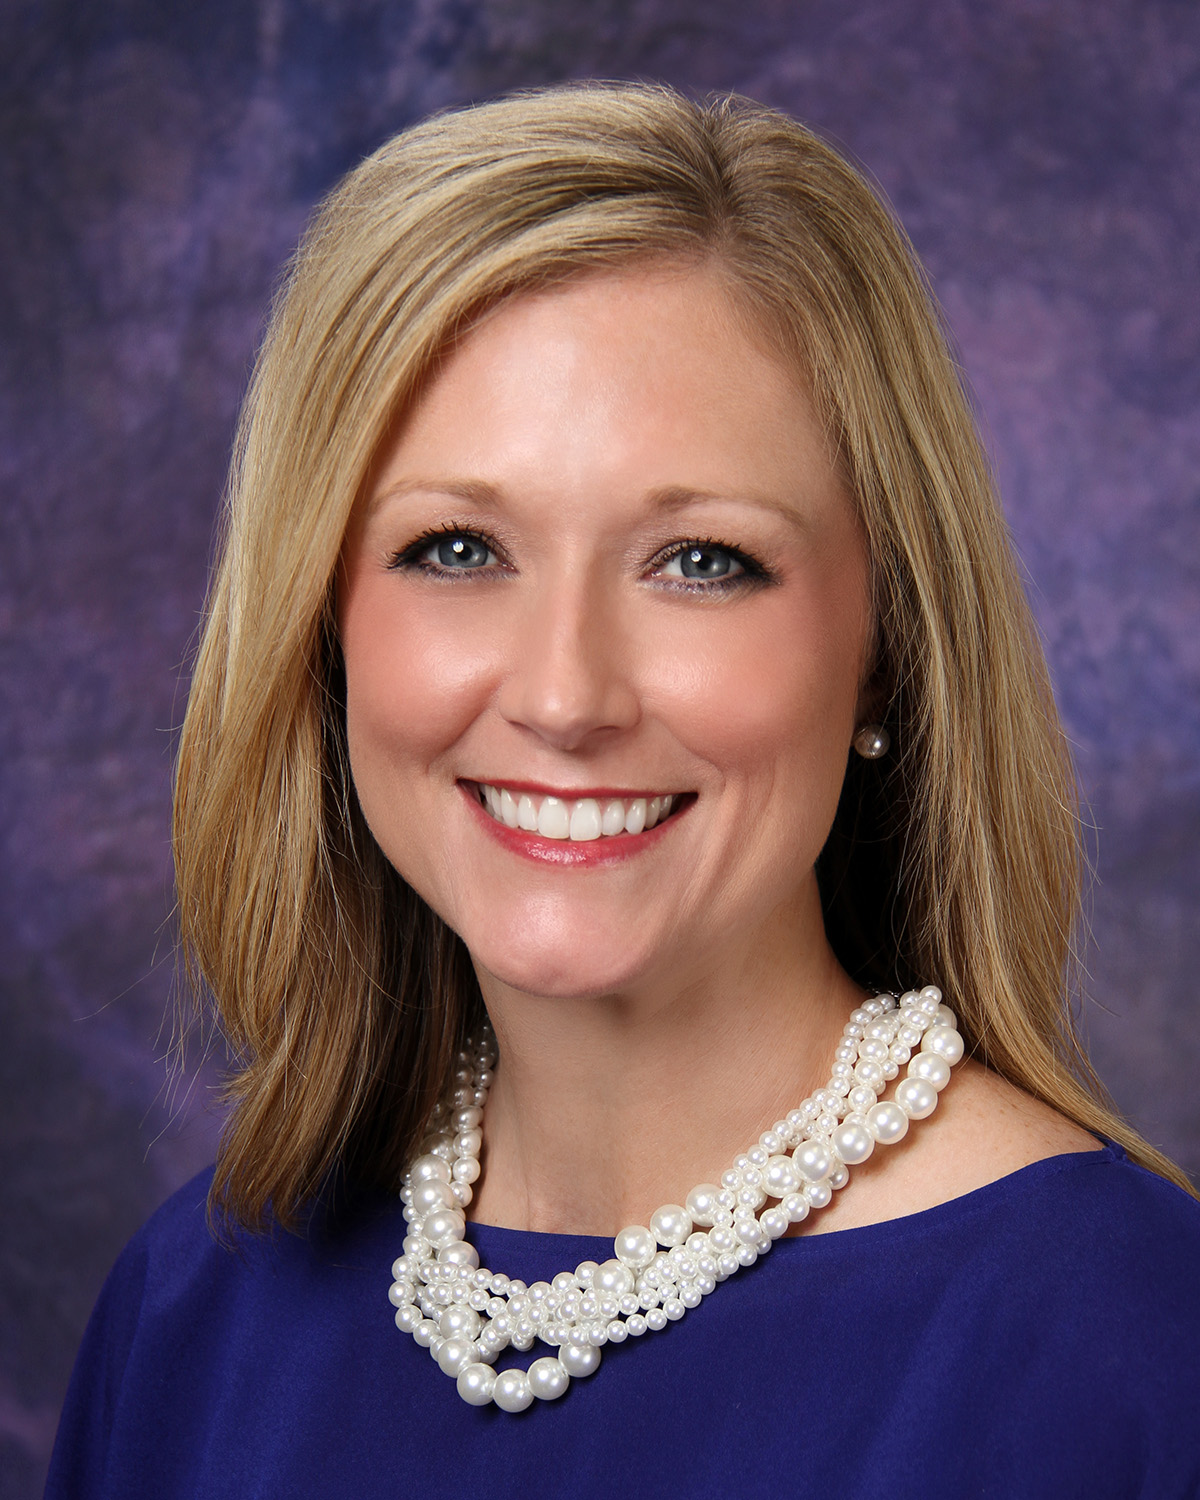 """Doolen does it all // Currently the Birmingham Elementary principal, Tiffany Doolan will take over Mrs. Janet Wyatt's position as Associate Principal starting the 2019-2020 school year. Doolan is excited for her future endeavors at East and plans to make her mark on students. """"I felt honored and thrilled for this opportunity,"""" Doolan said. """"My hope is that I leave a mark of positivity, hope and servant leadership. I want to be the smile that brightens your day, and the voice of encouragement to tackle any task."""""""